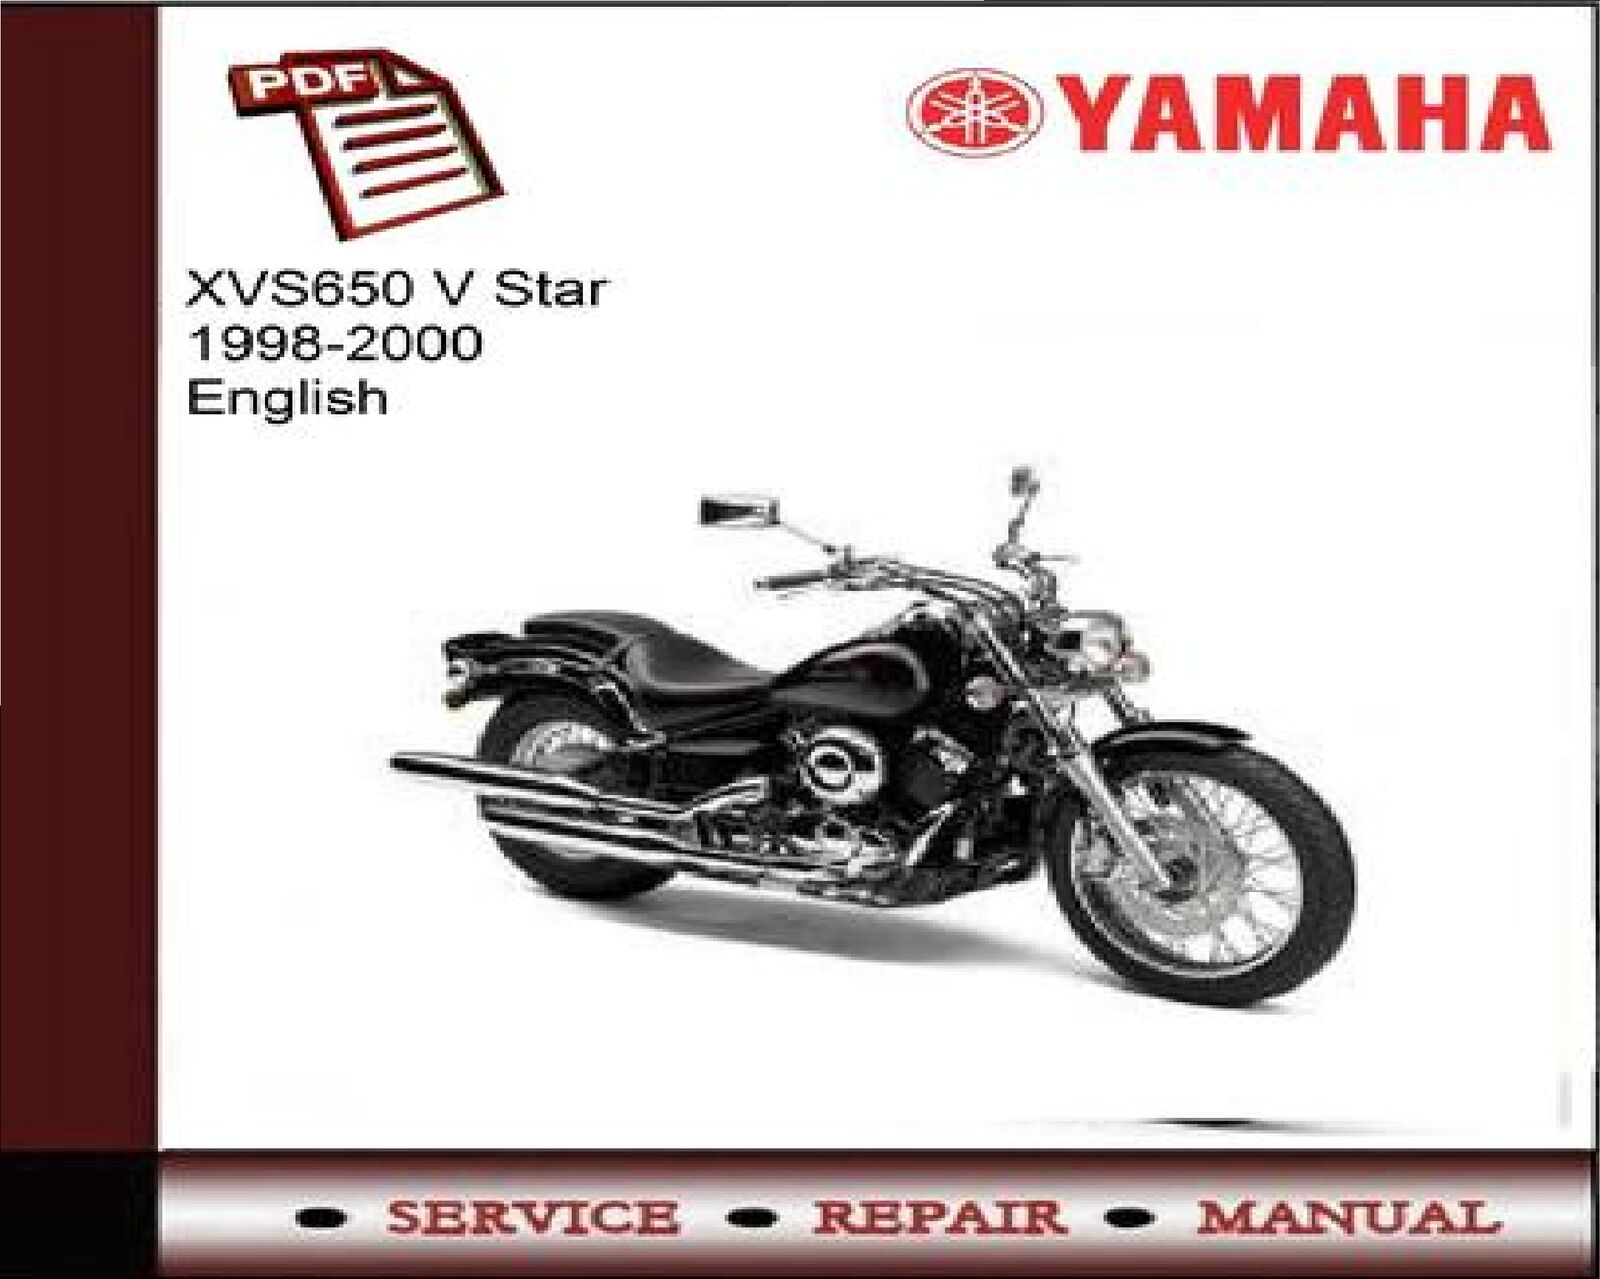 Yamaha XVS650 XVS 650 V Star 1998 - 2000 Service Repair Workshop Manual 1  of 1FREE Shipping See More